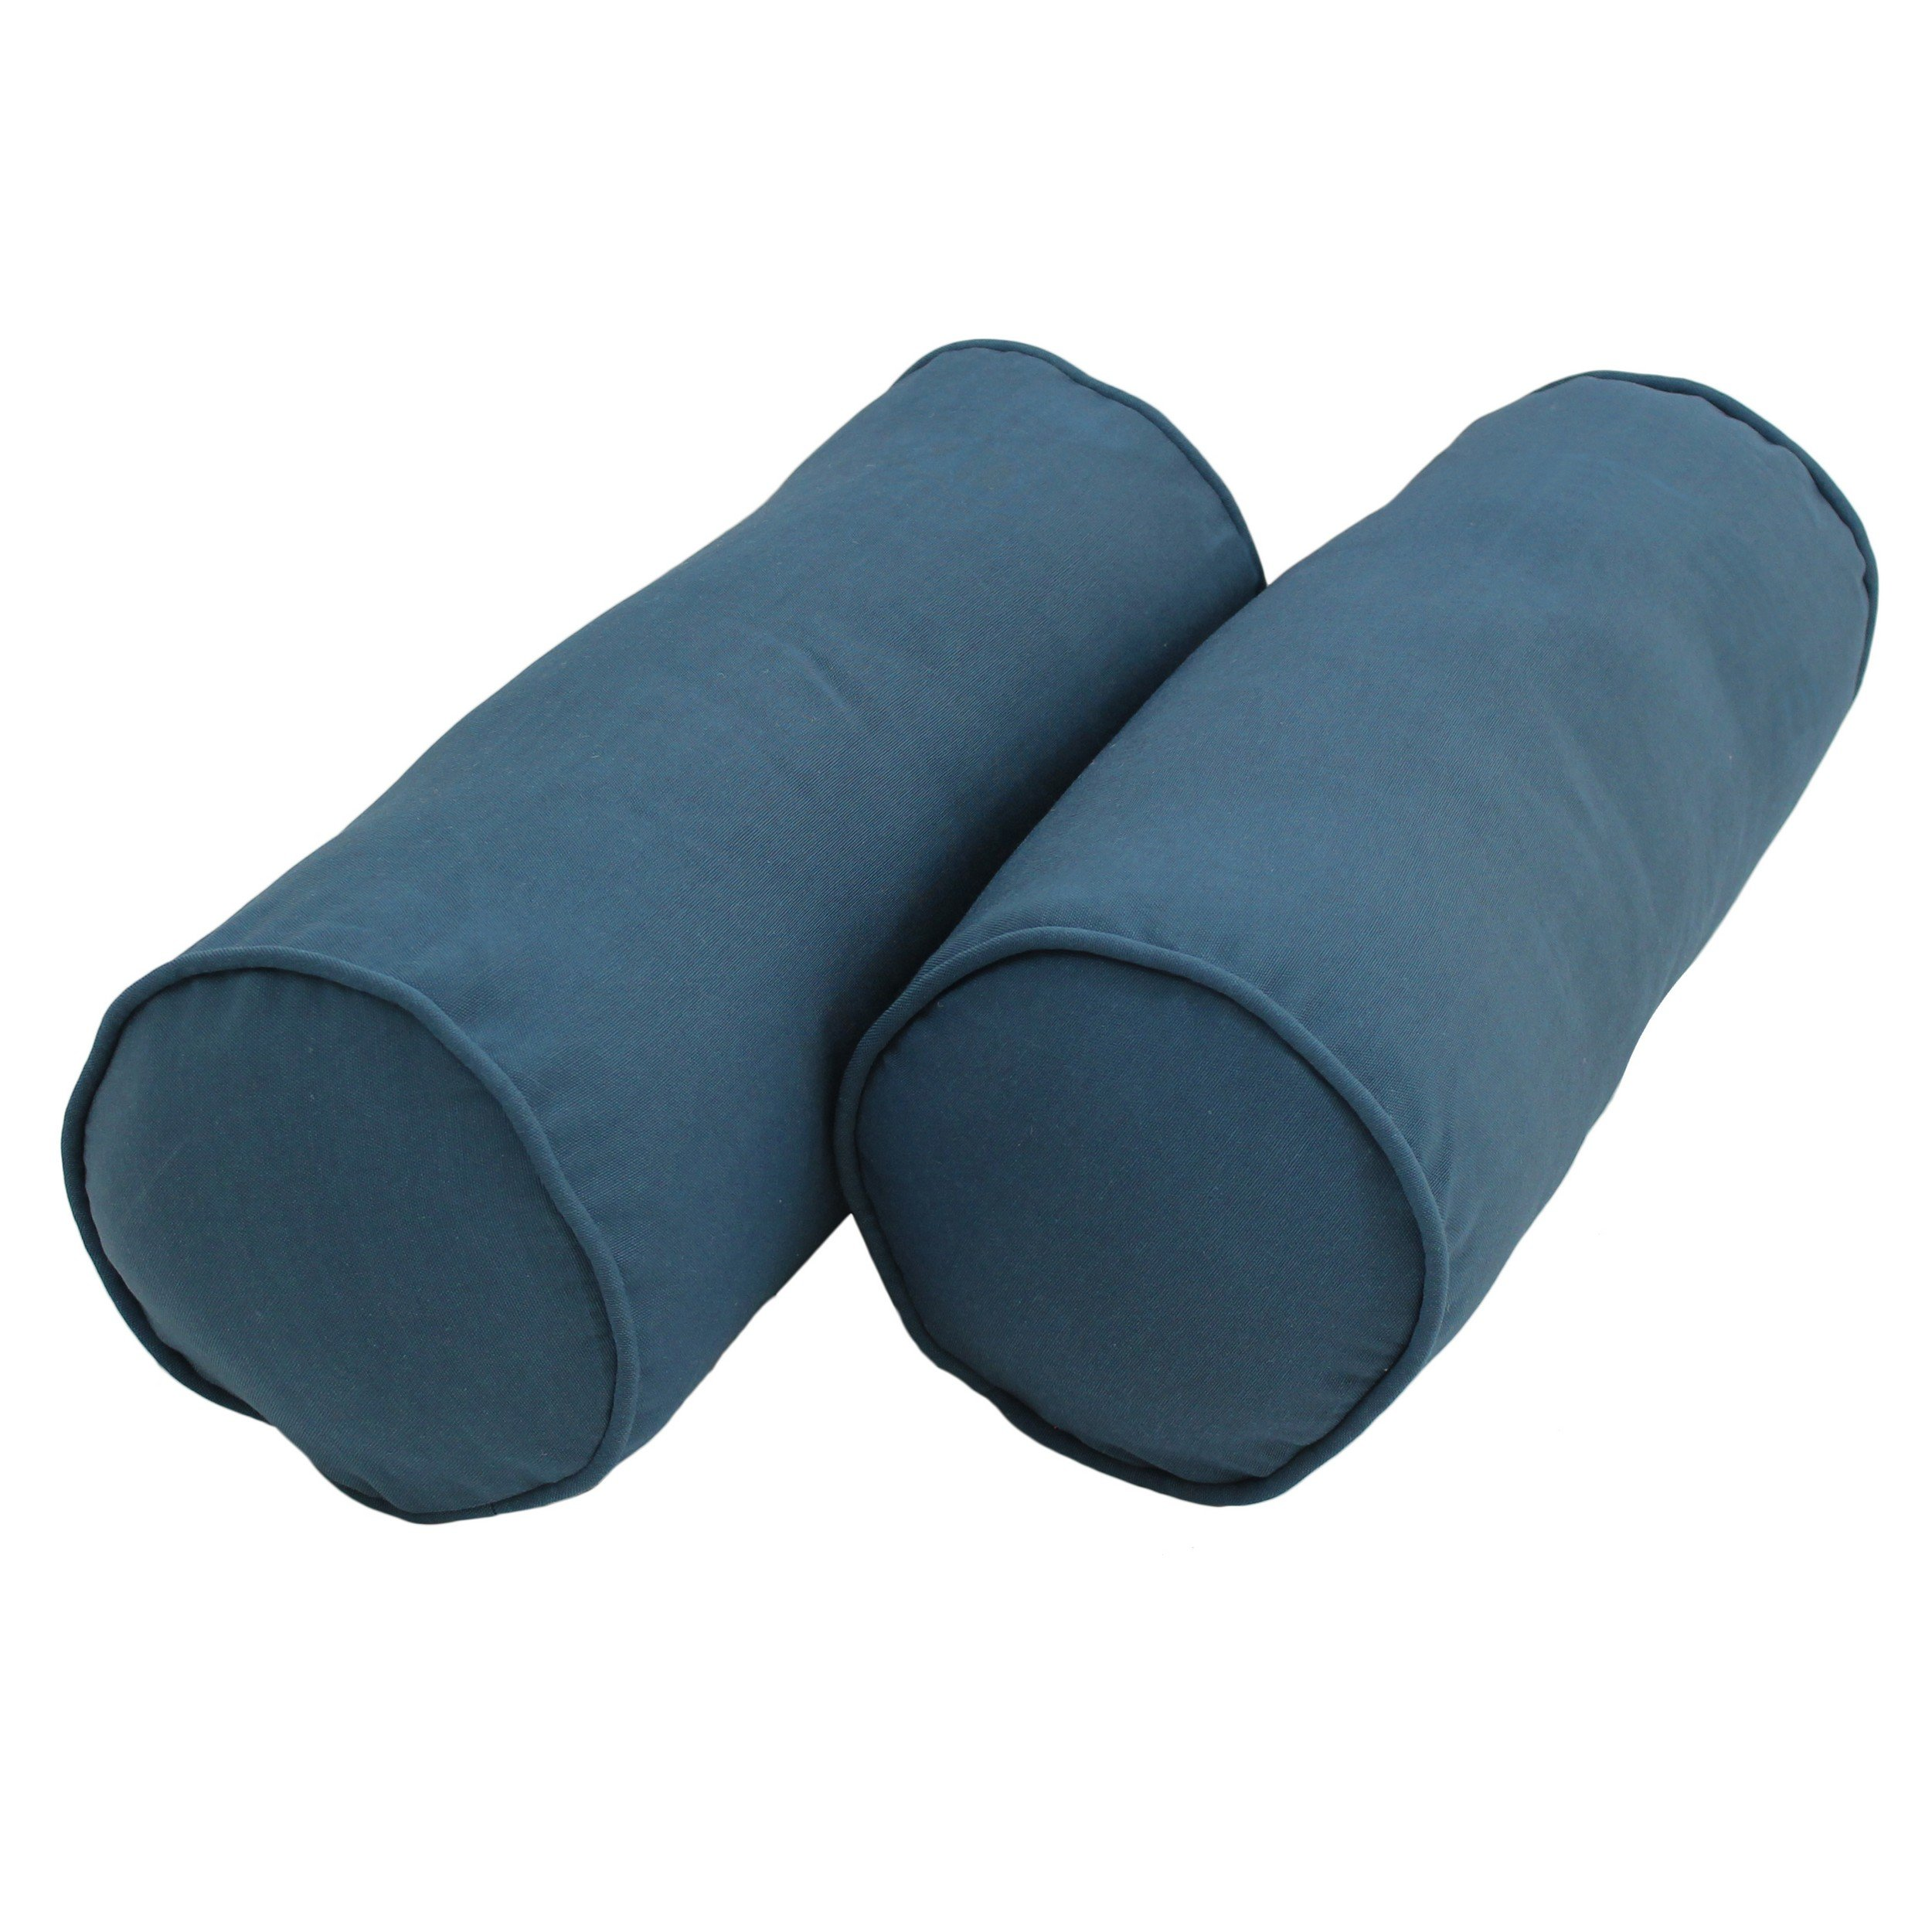 Blazing Needles Double-Corded Solid Twill Bolster Pillows with Inserts (Set of 2), 20'' x 8'', Indigo